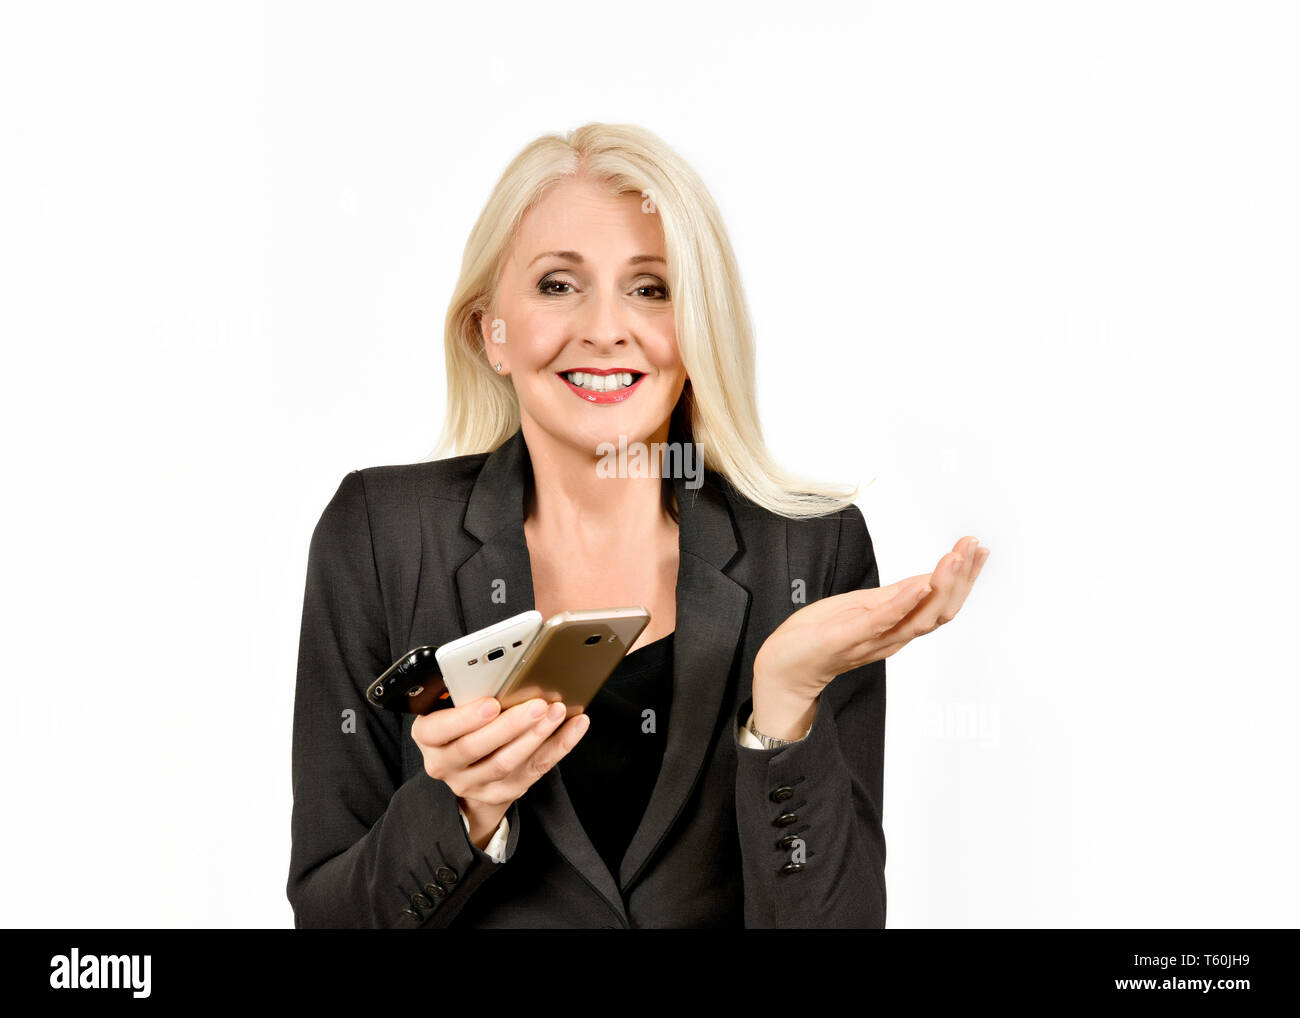 Attractive business woman holding multiple mobile phones with hand up in  a resigned look Stock Photo